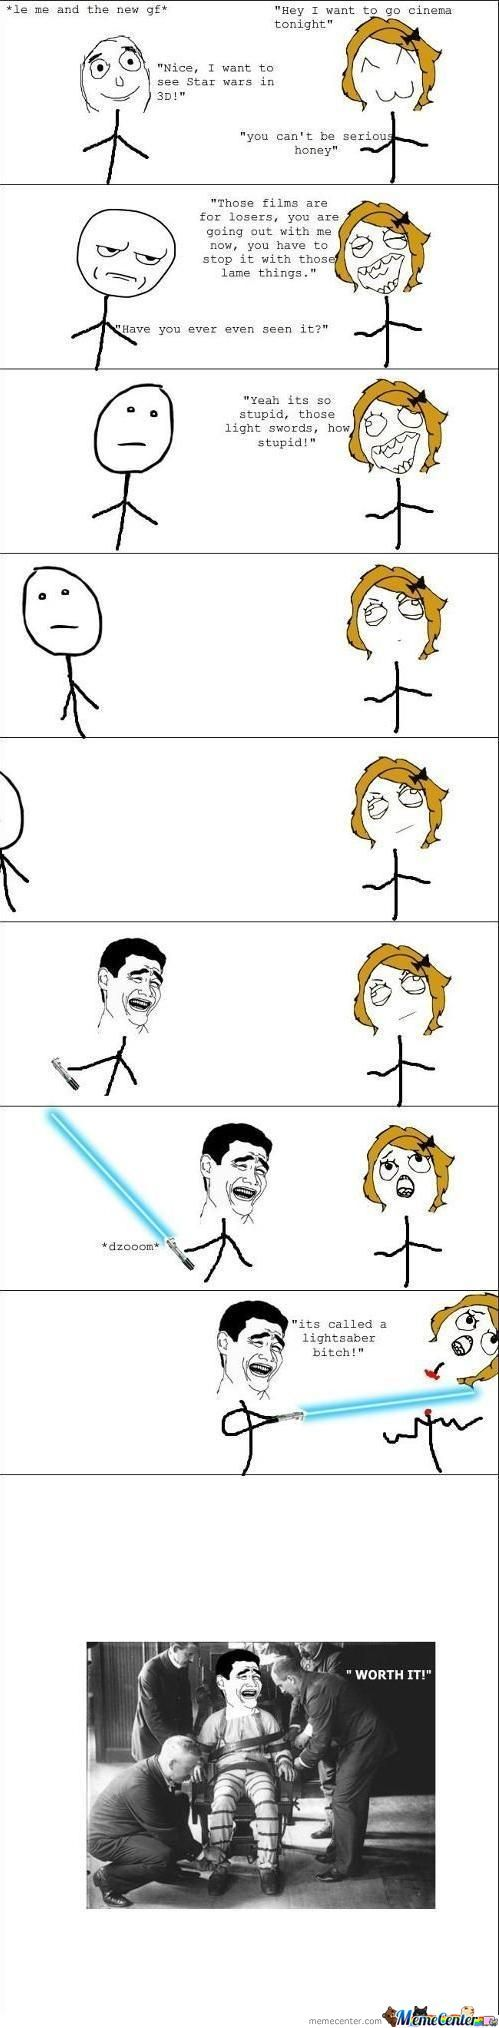 It's A Lightsaber!